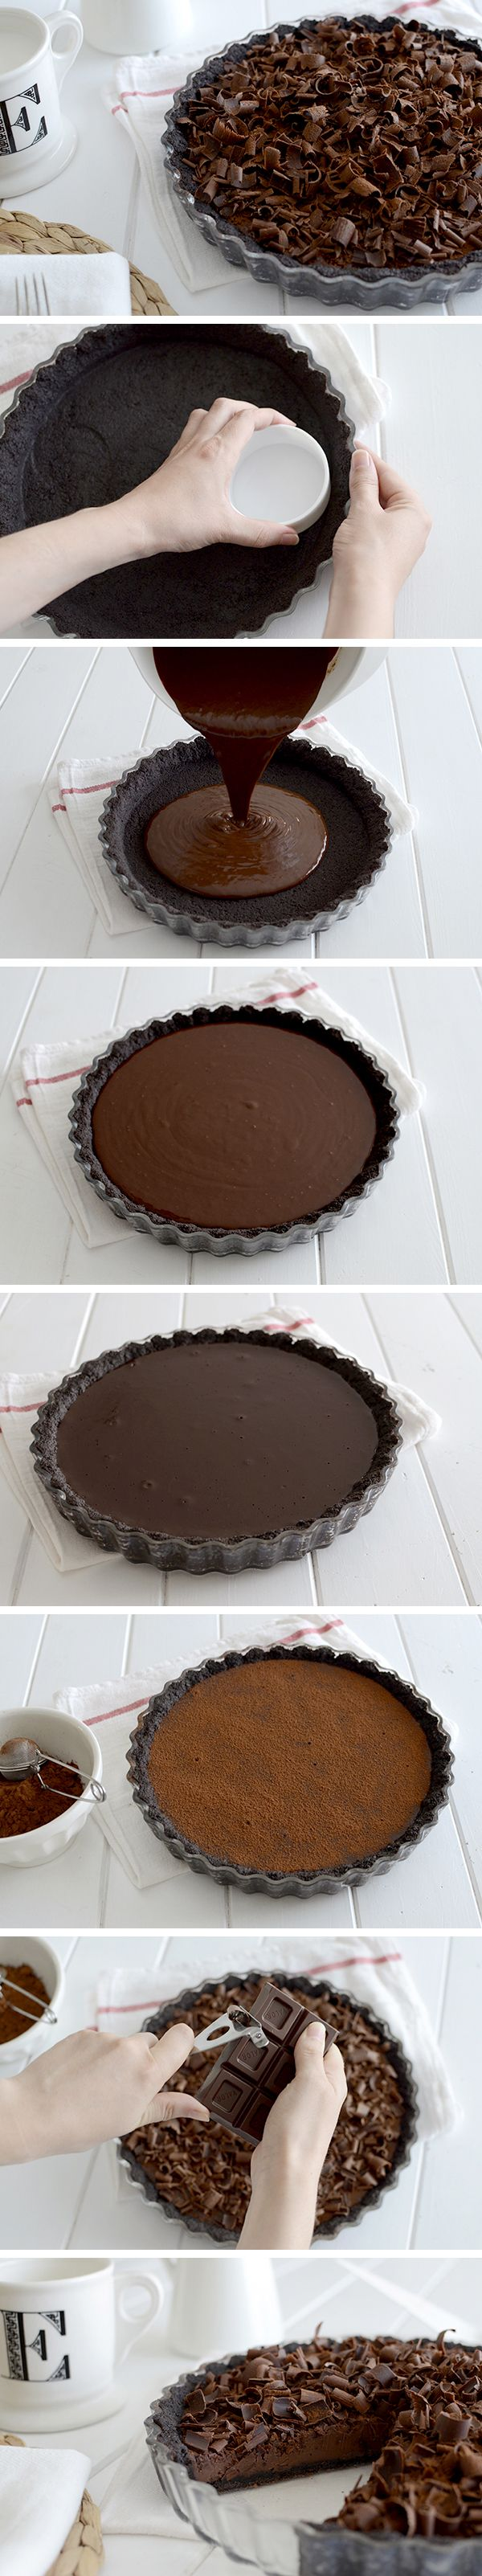 Chocolate tart - Tarta fina de chocolate                                                                                                                                                      Más